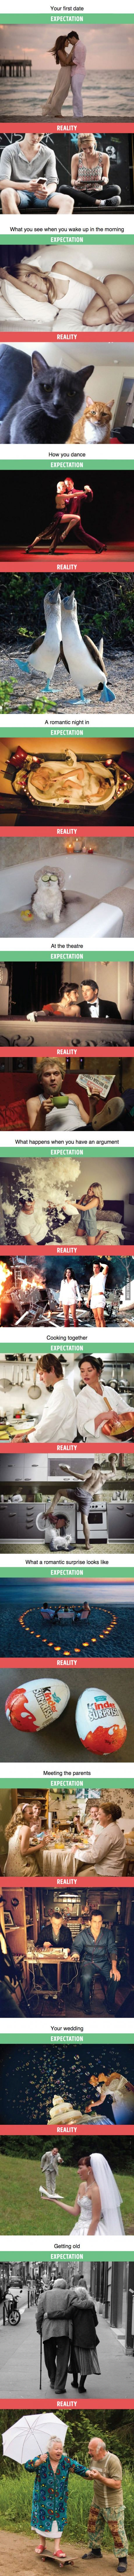 Relationships: Expectations Vs. Reality